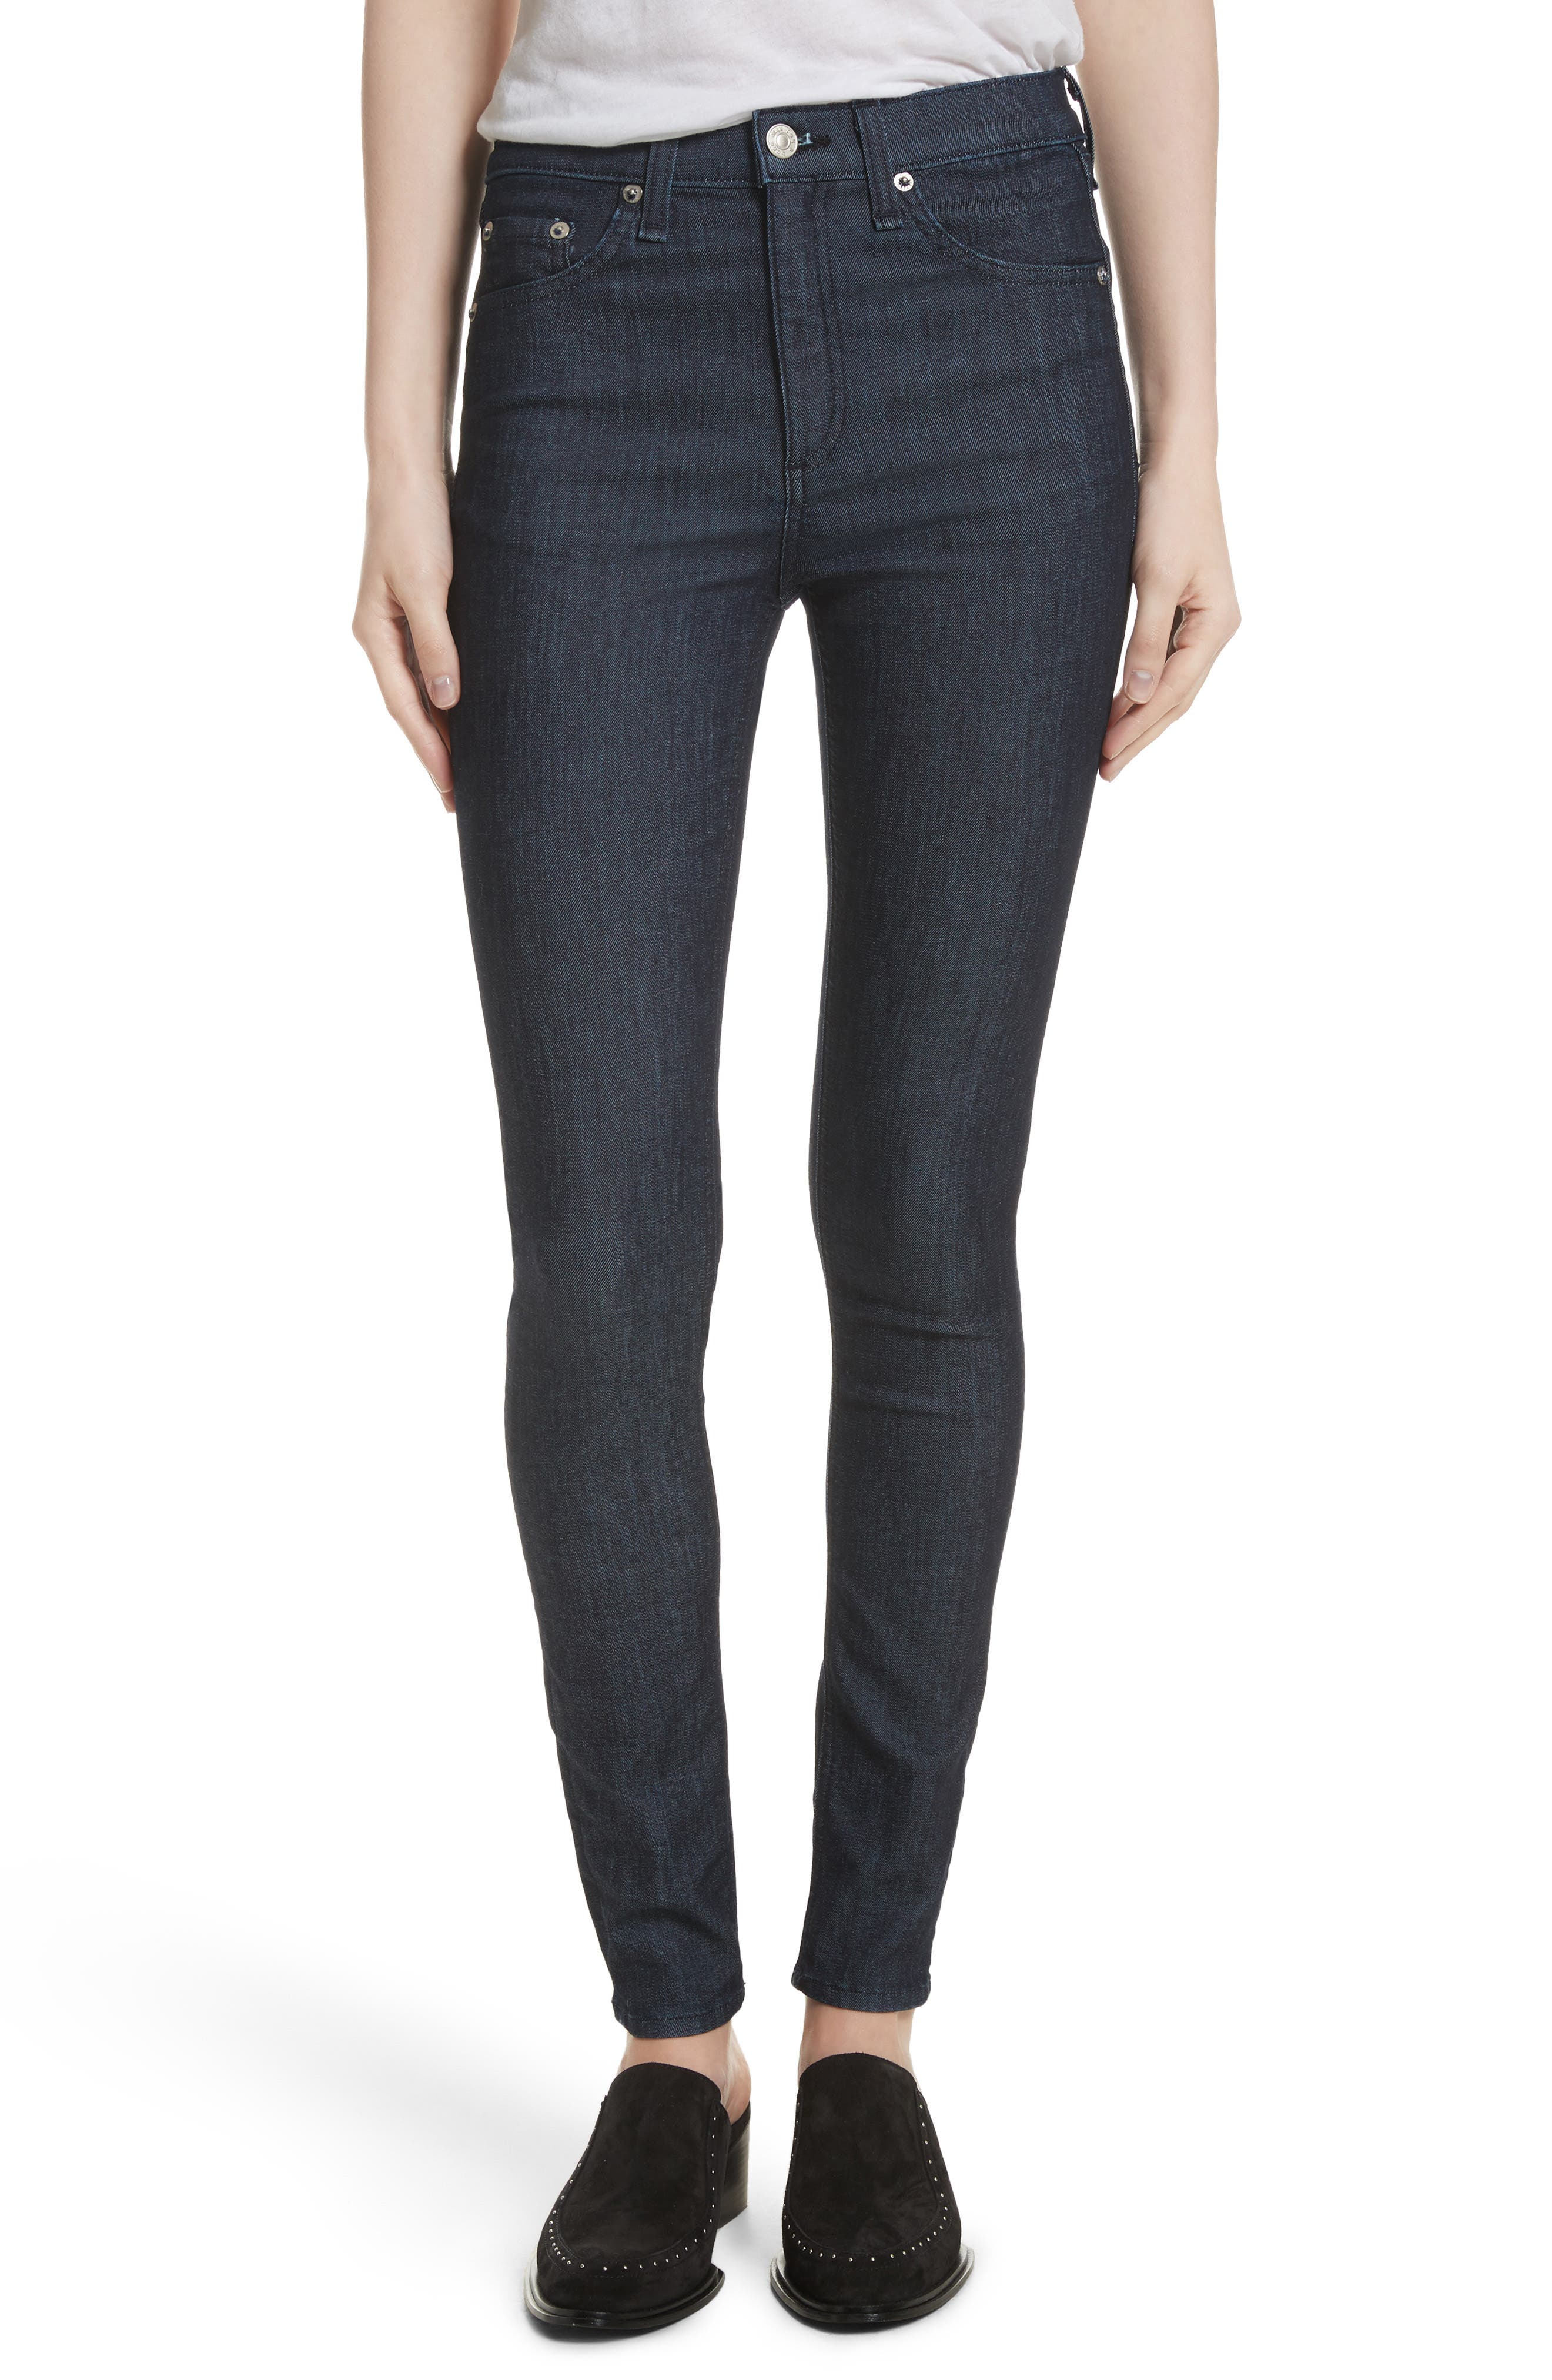 Alternate Image 1 Selected - rag & bone/JEAN High Waist Skinny Jeans (Indigo)